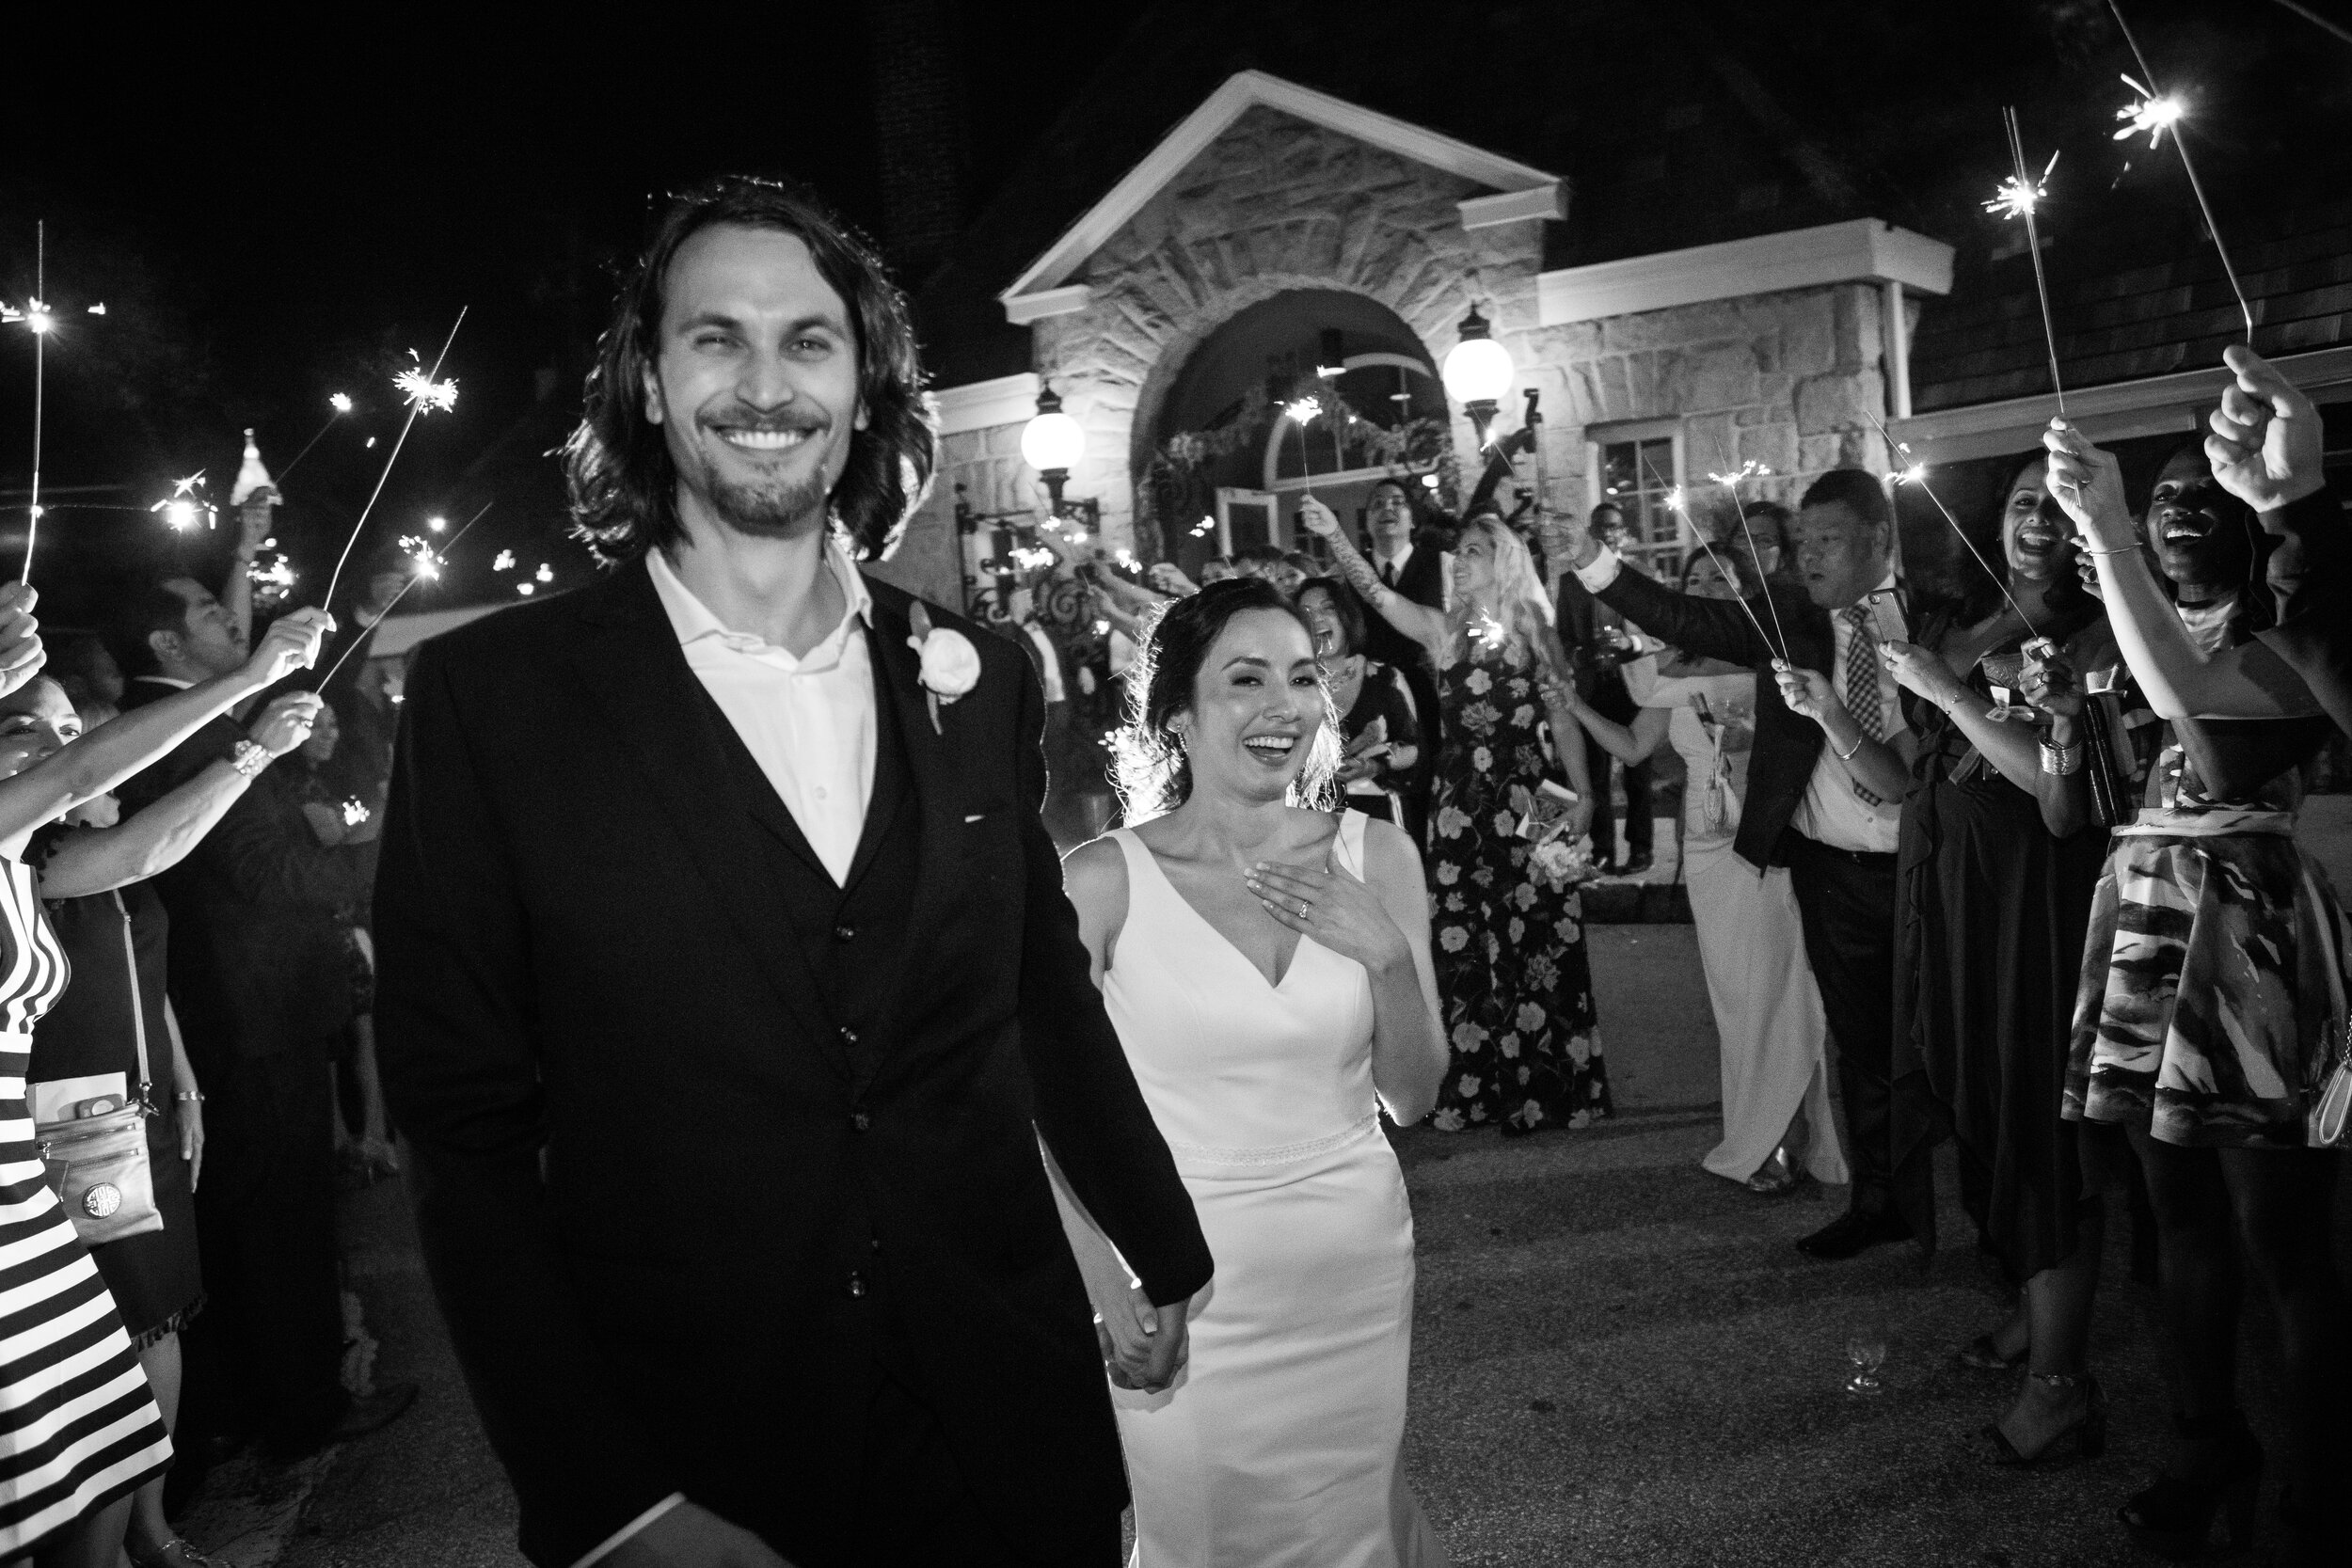 Classic black and white photo journalistic wedding photography capture by the Atlanta Wedding Photographers at AtlantaArtisticWeddings